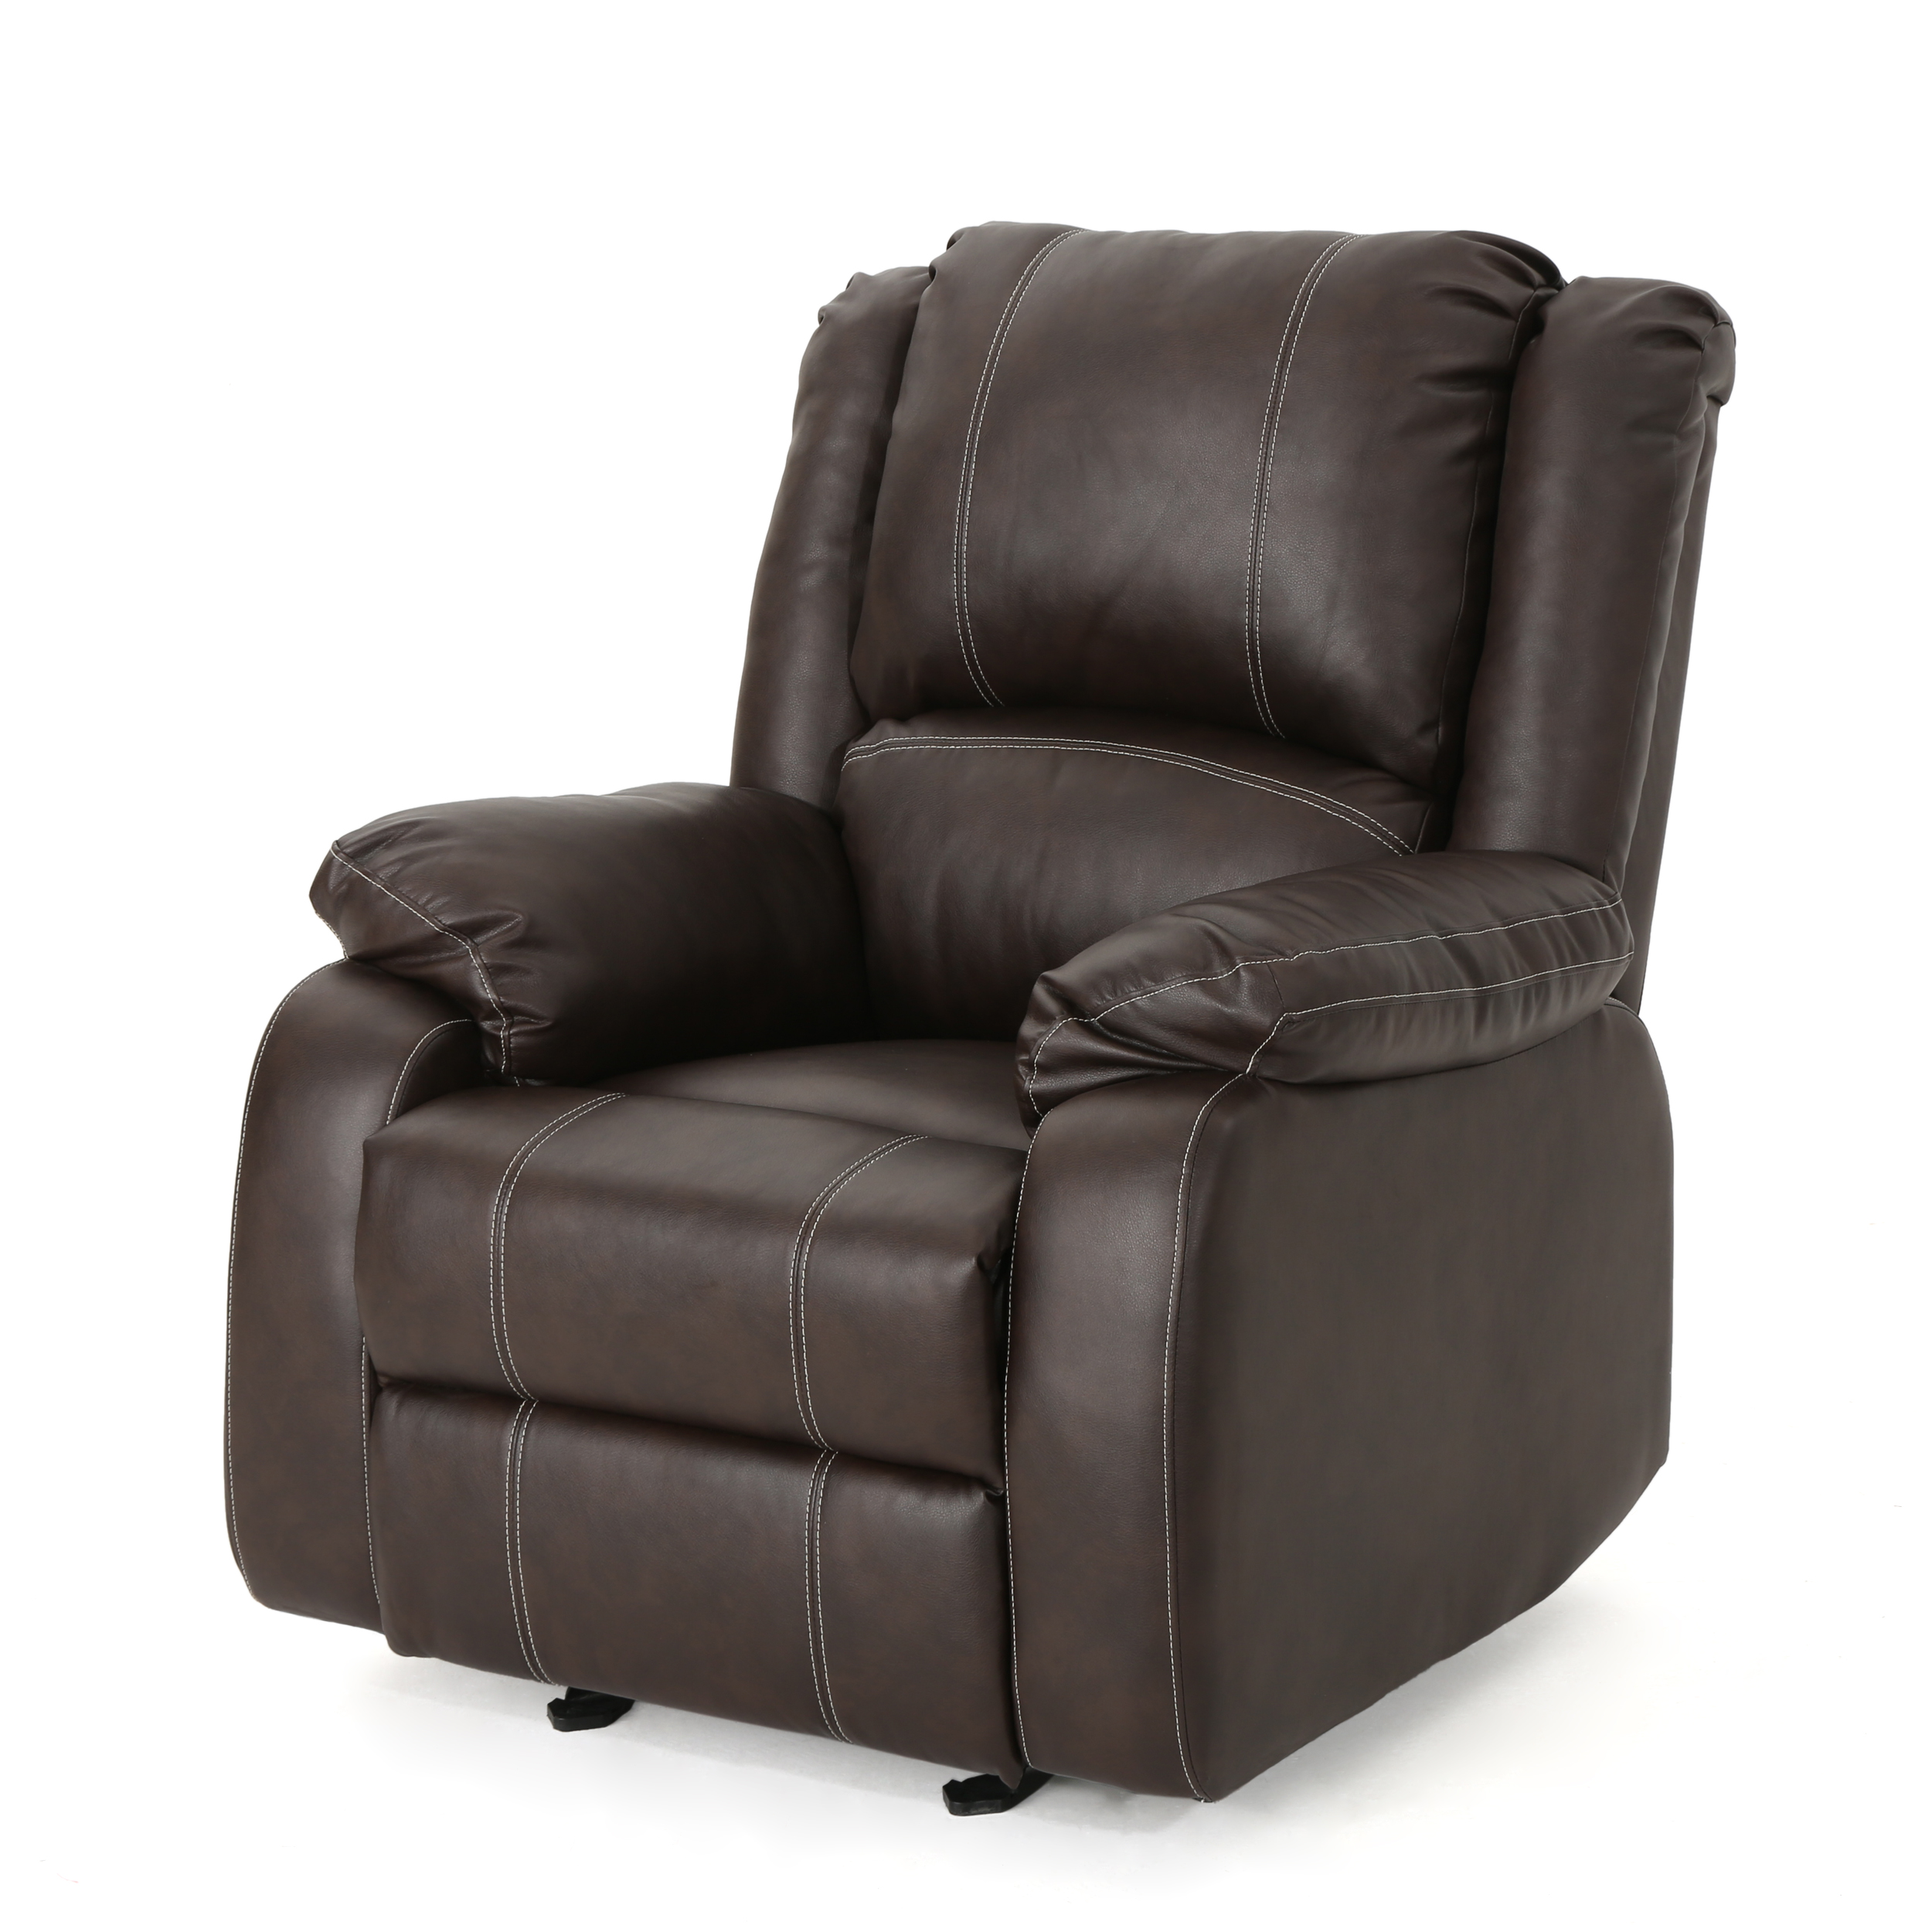 Tammy Traditional Leather Recliner, Dark Brown